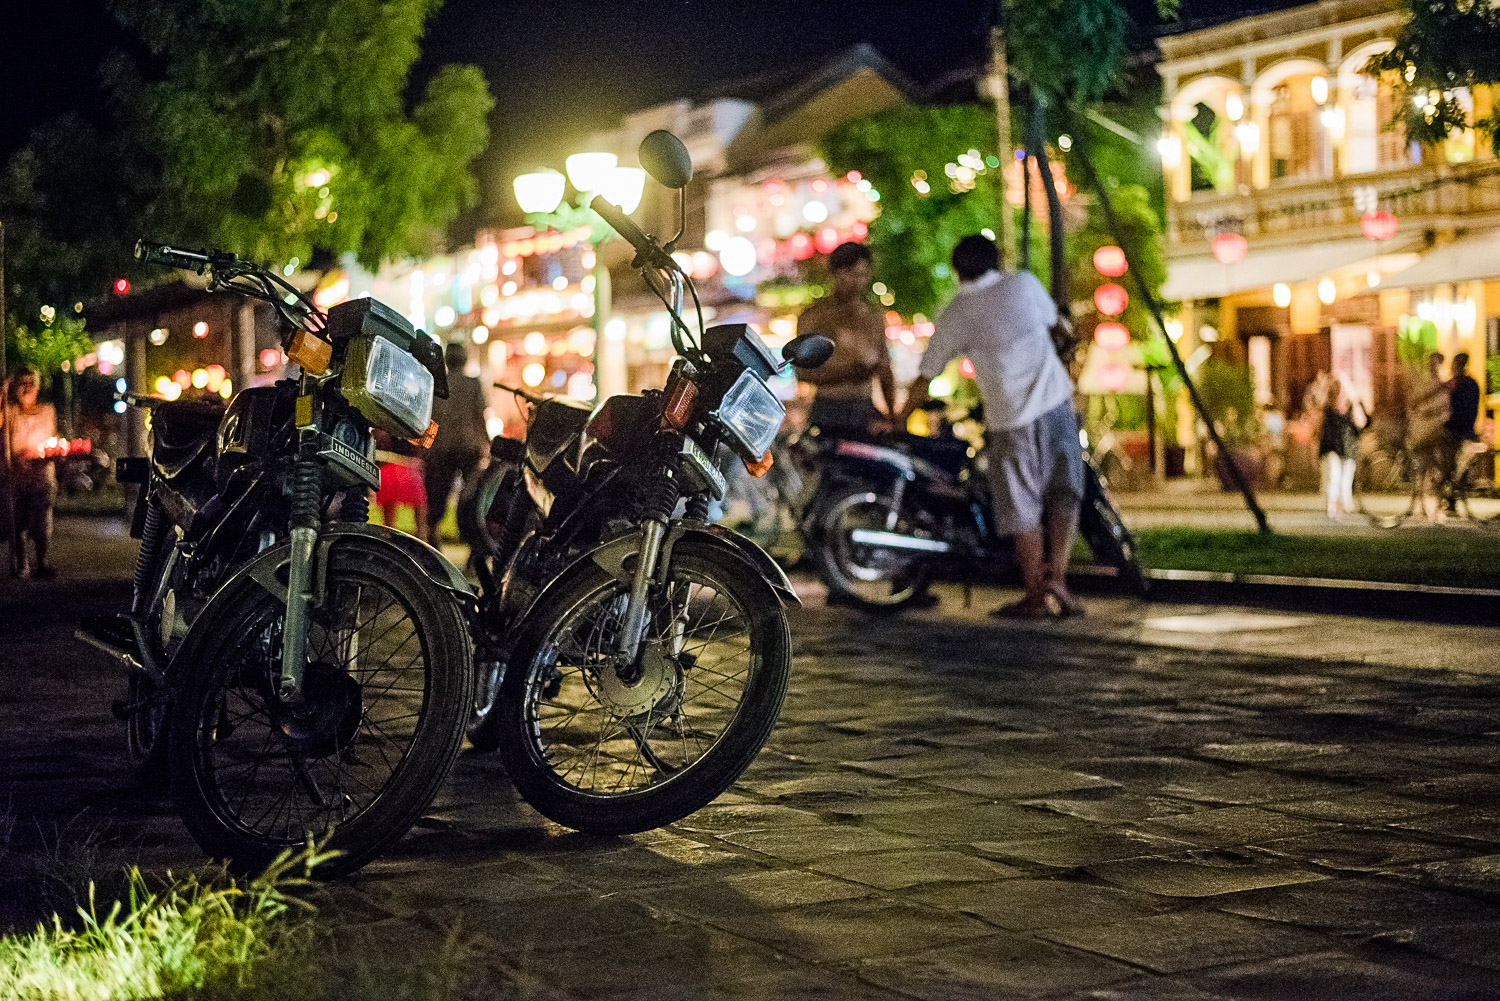 Our motorcycles and Hoi An by night